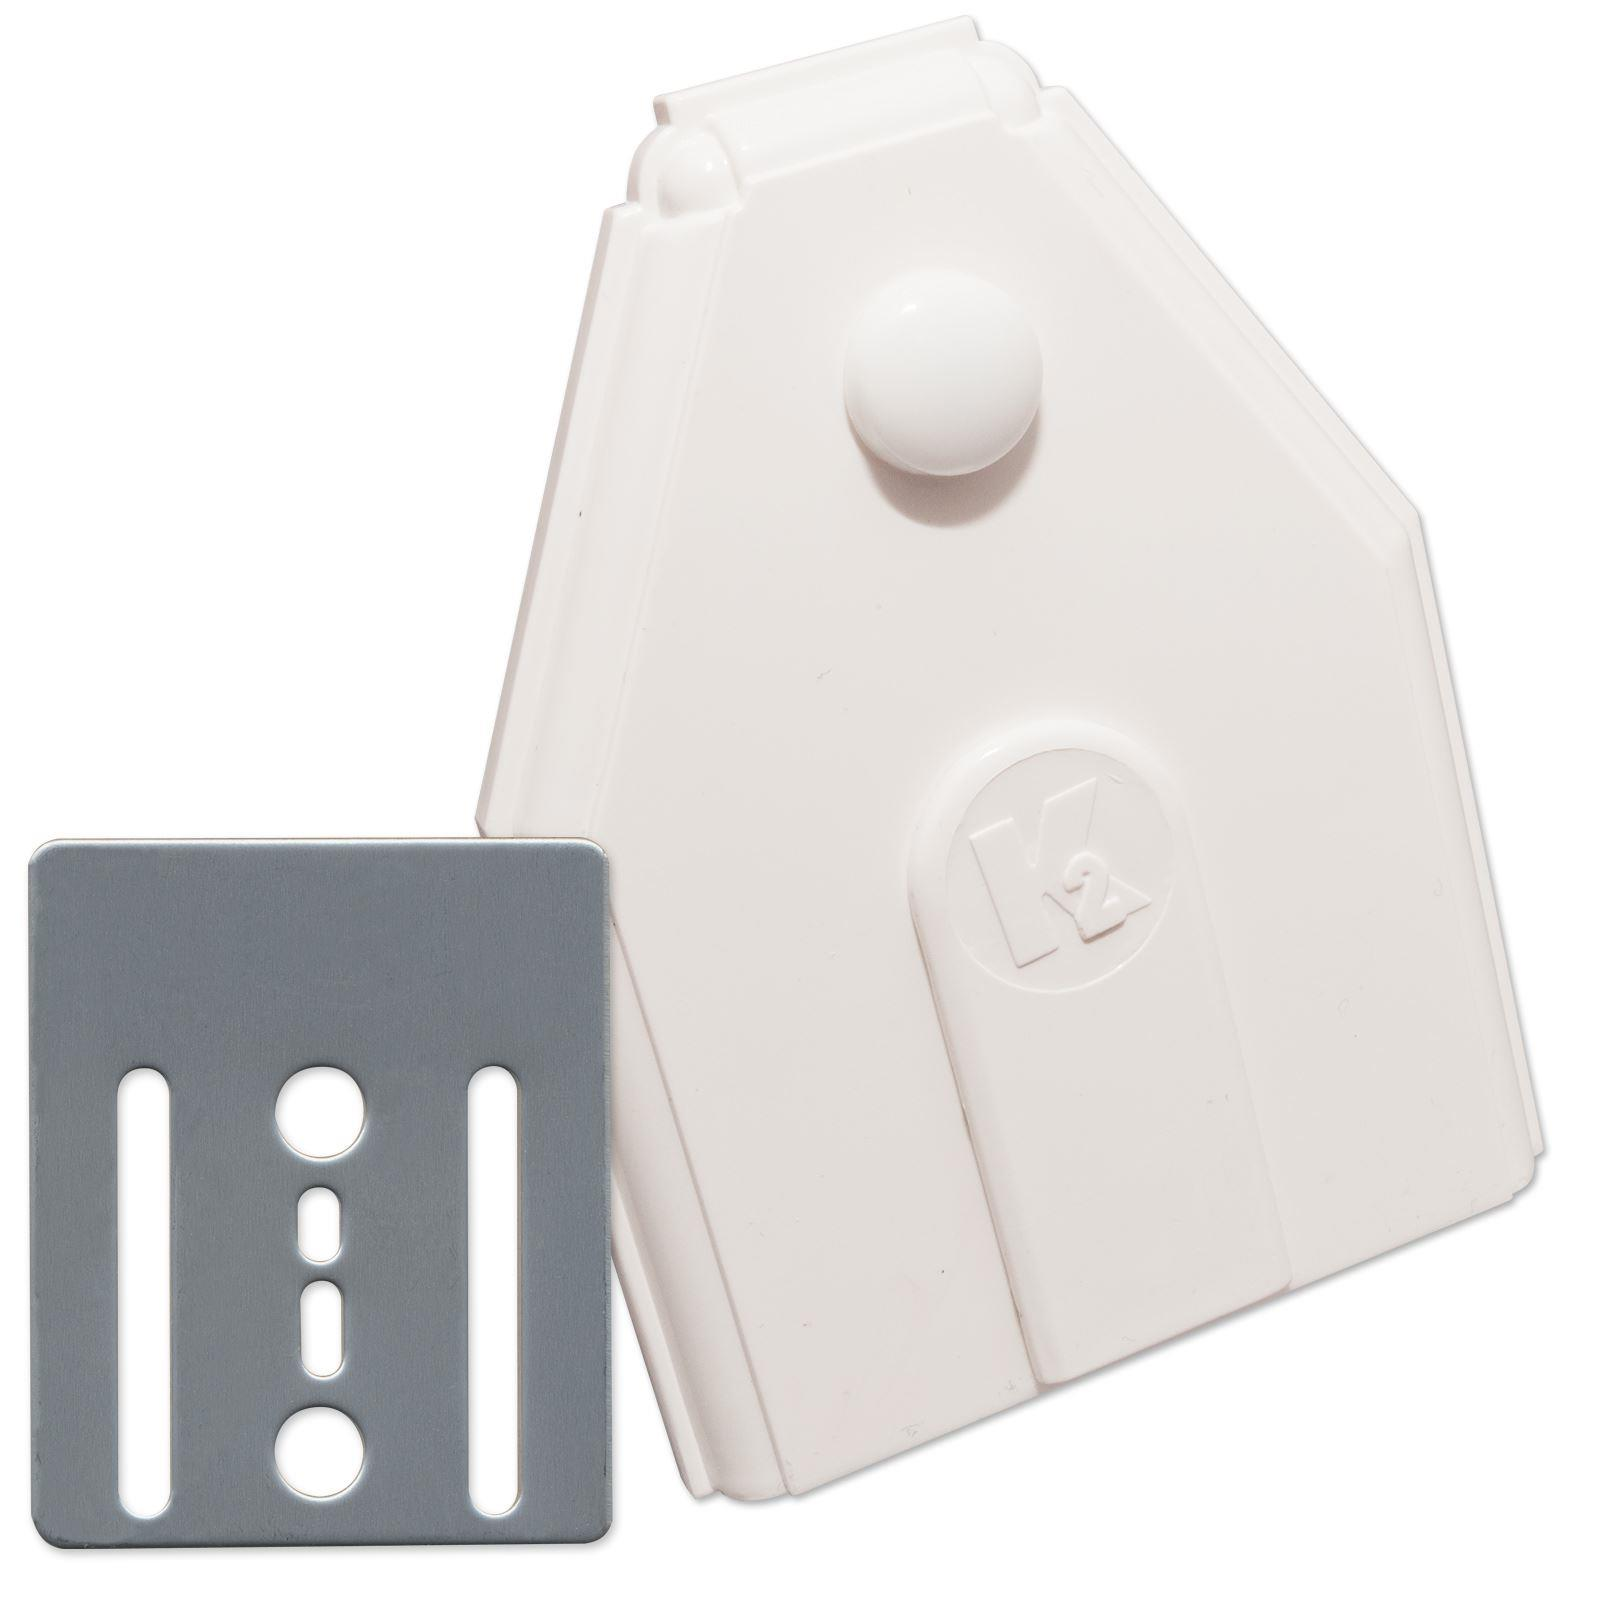 K2 C9038 C9039 Conservatory Roof End Cap Replacement Kit